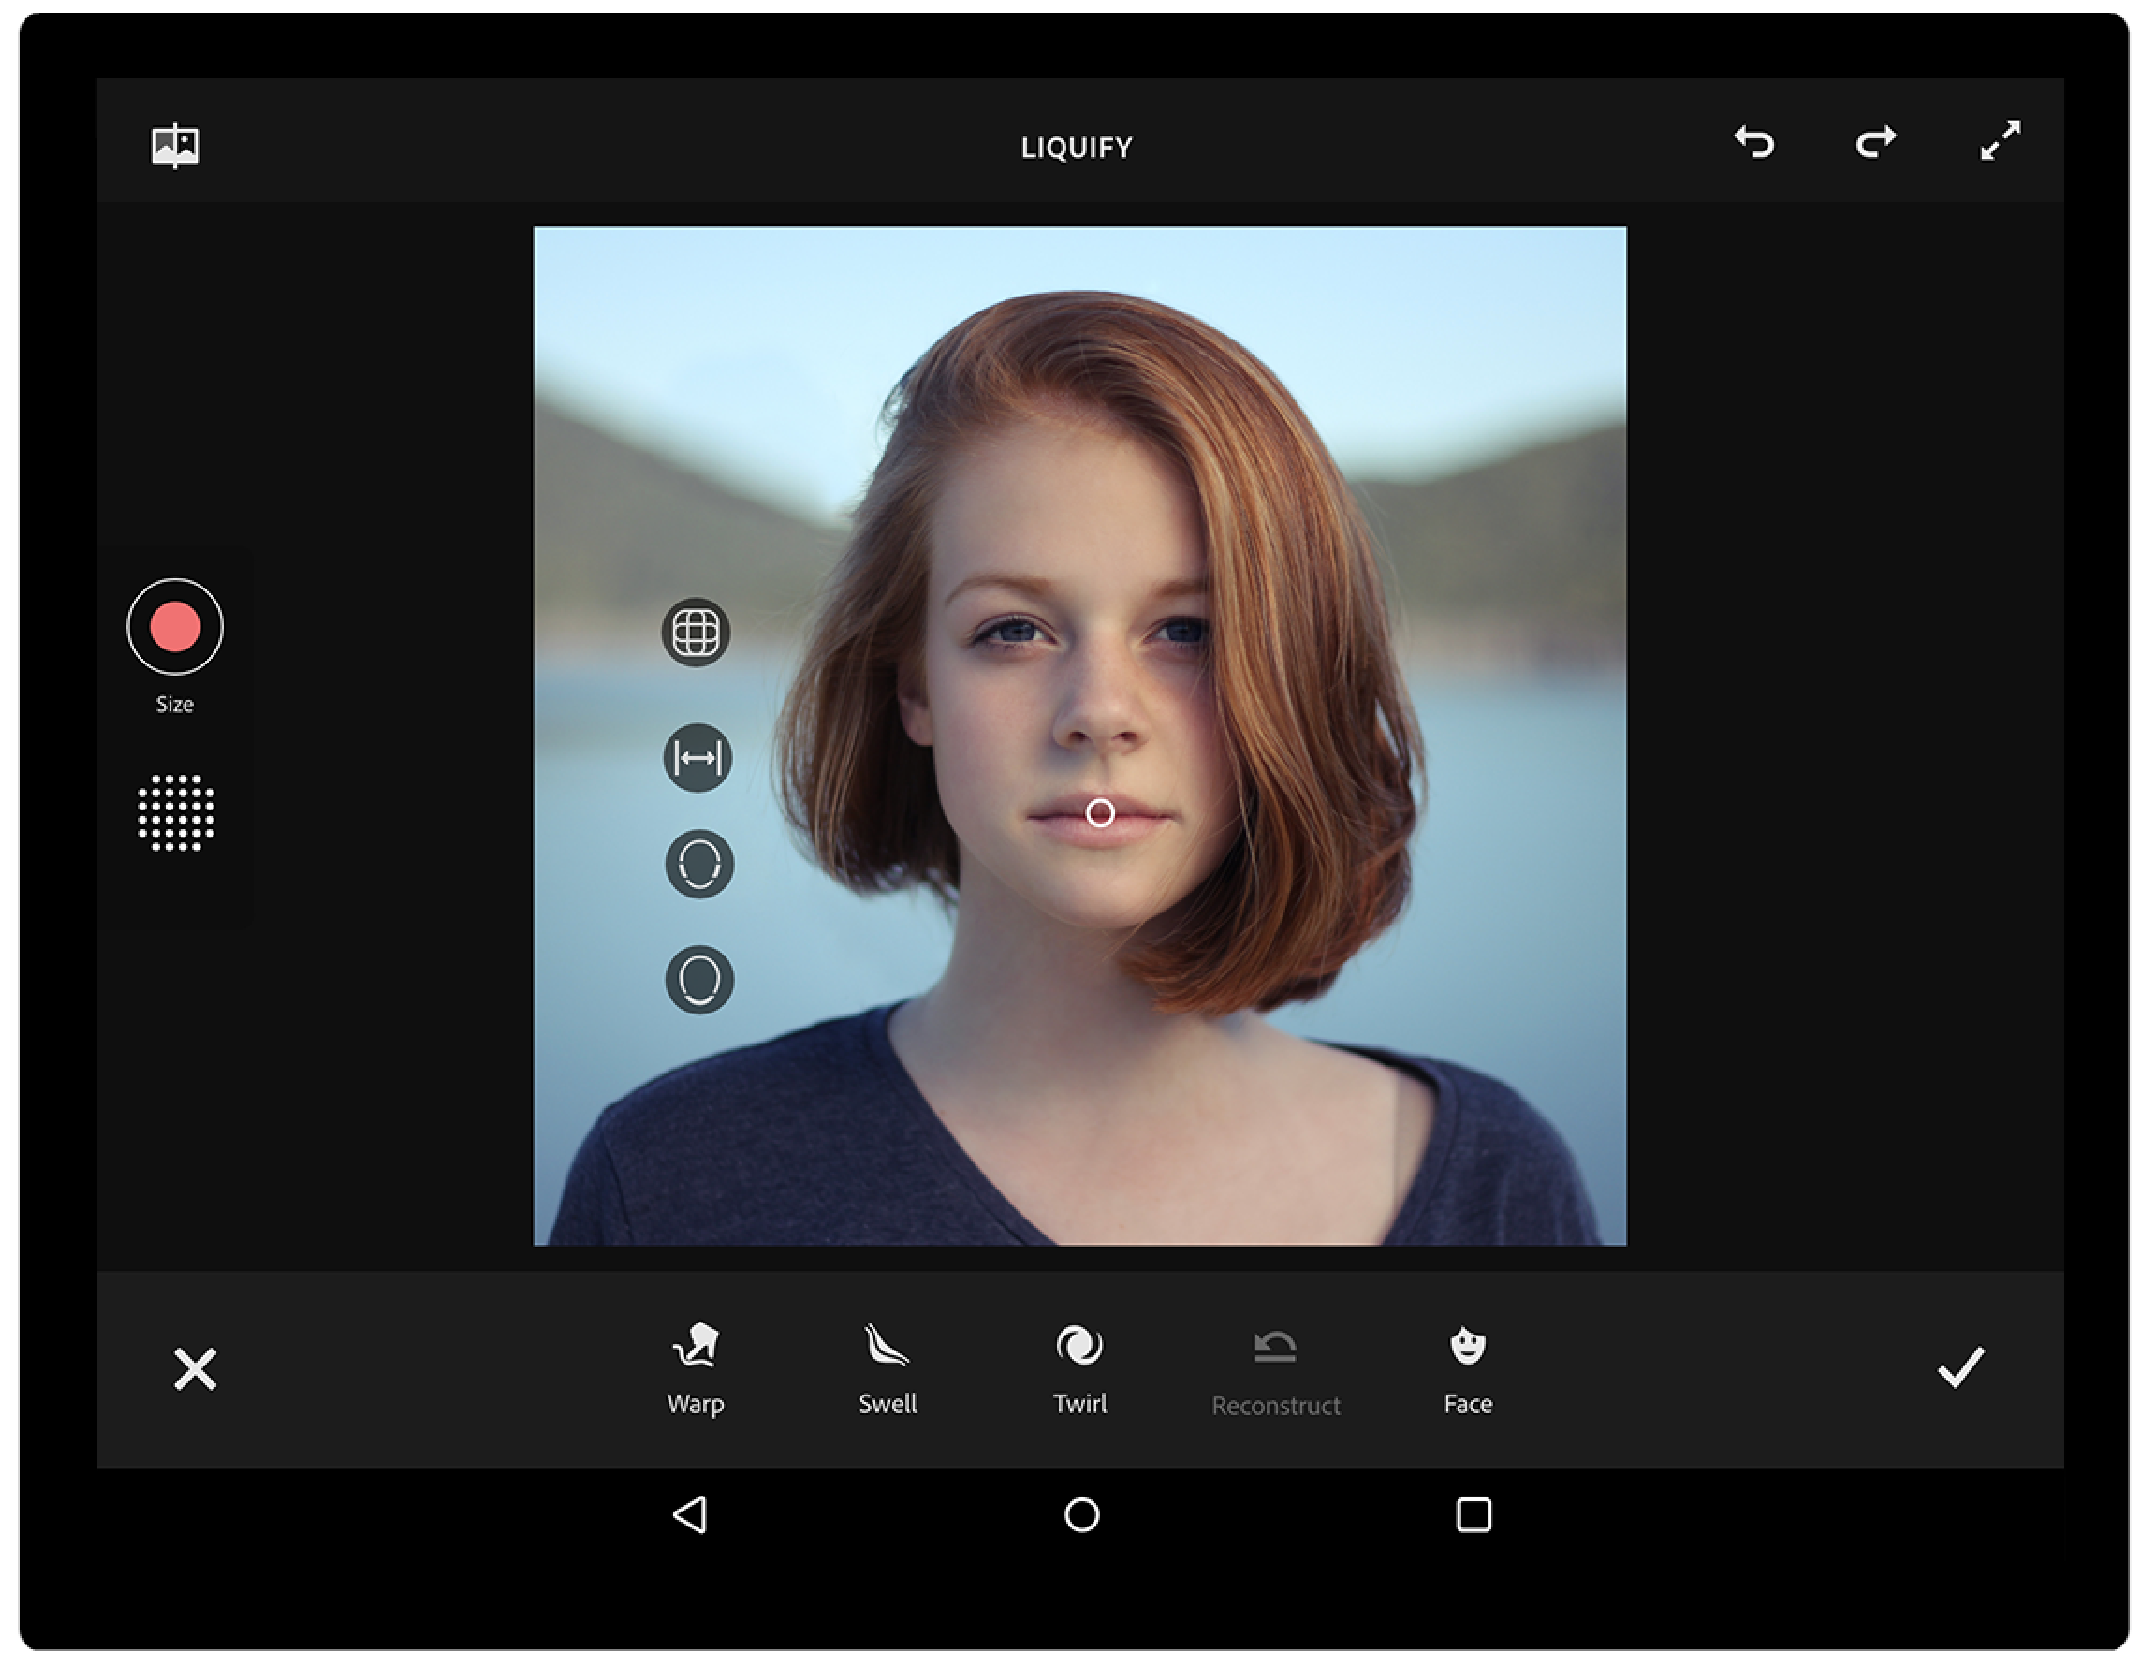 01Liquify - Fix's face aware Liquify tool can let you edit any situation. You can make a person smile, edit their features or simply have fun with it. The intensity controllers are HUD based to provide more intuitive results.